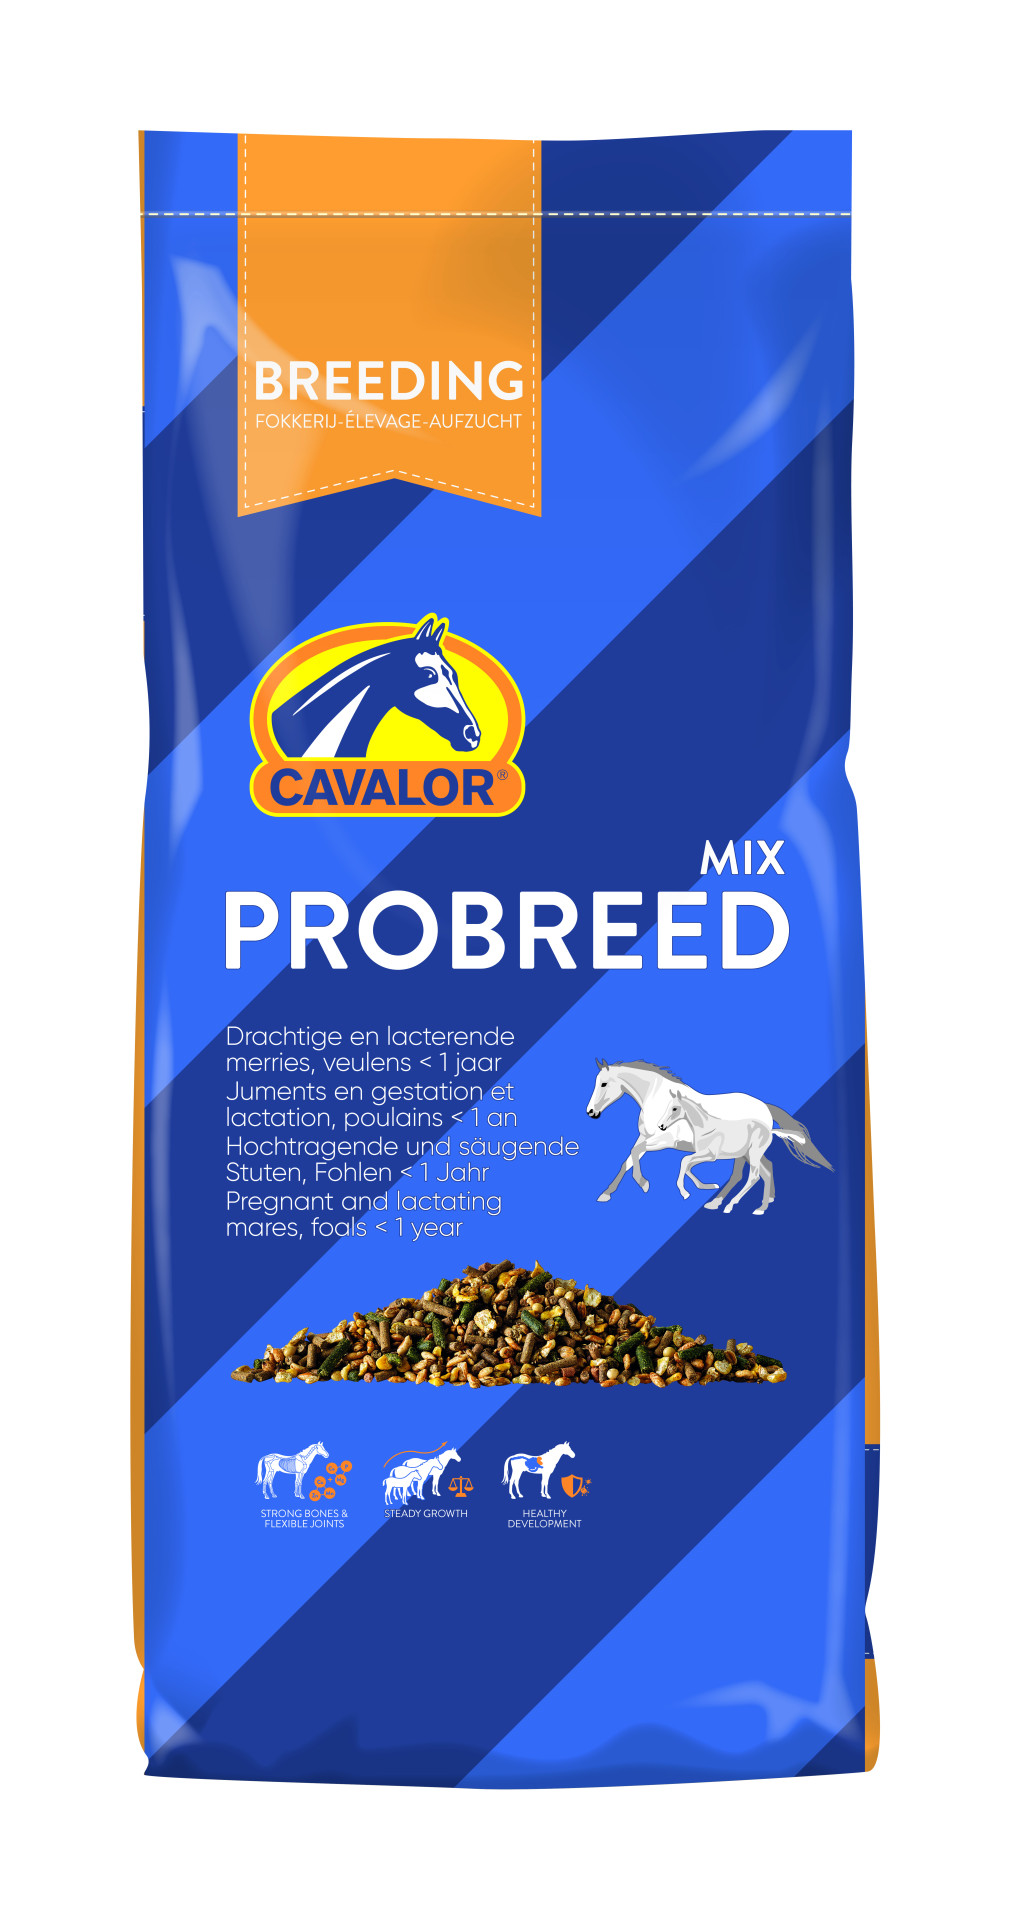 Cavalor Probreed Mix 20 kg